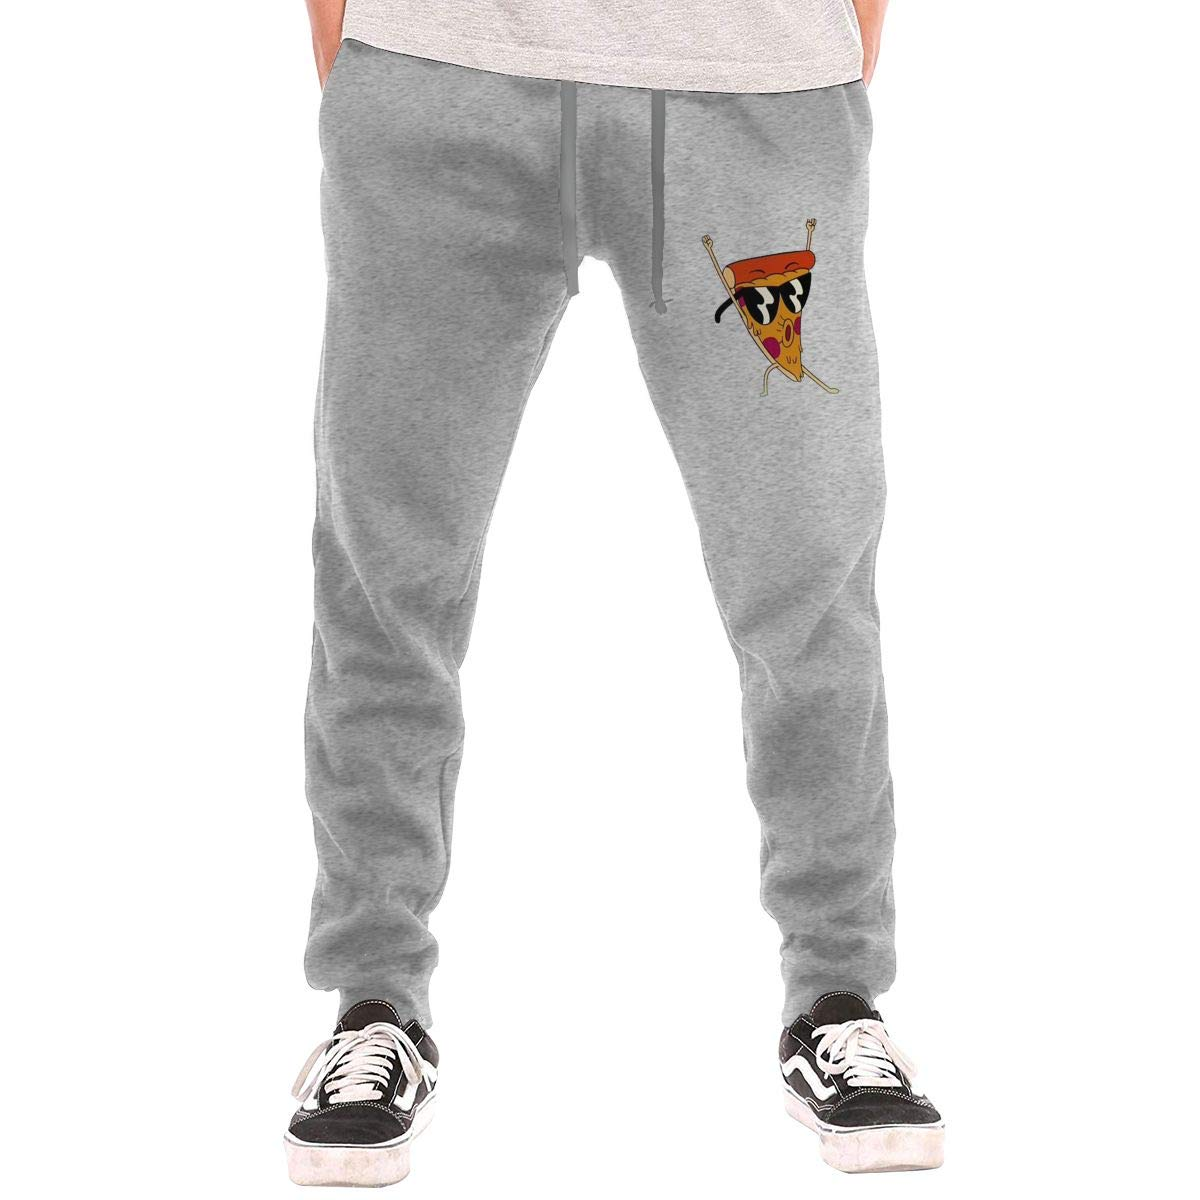 Numik A Pizza with Sunglasses Drawstring Waist,100/% Cotton,Elastic Waist Cuffed,Jogger Sweatpants